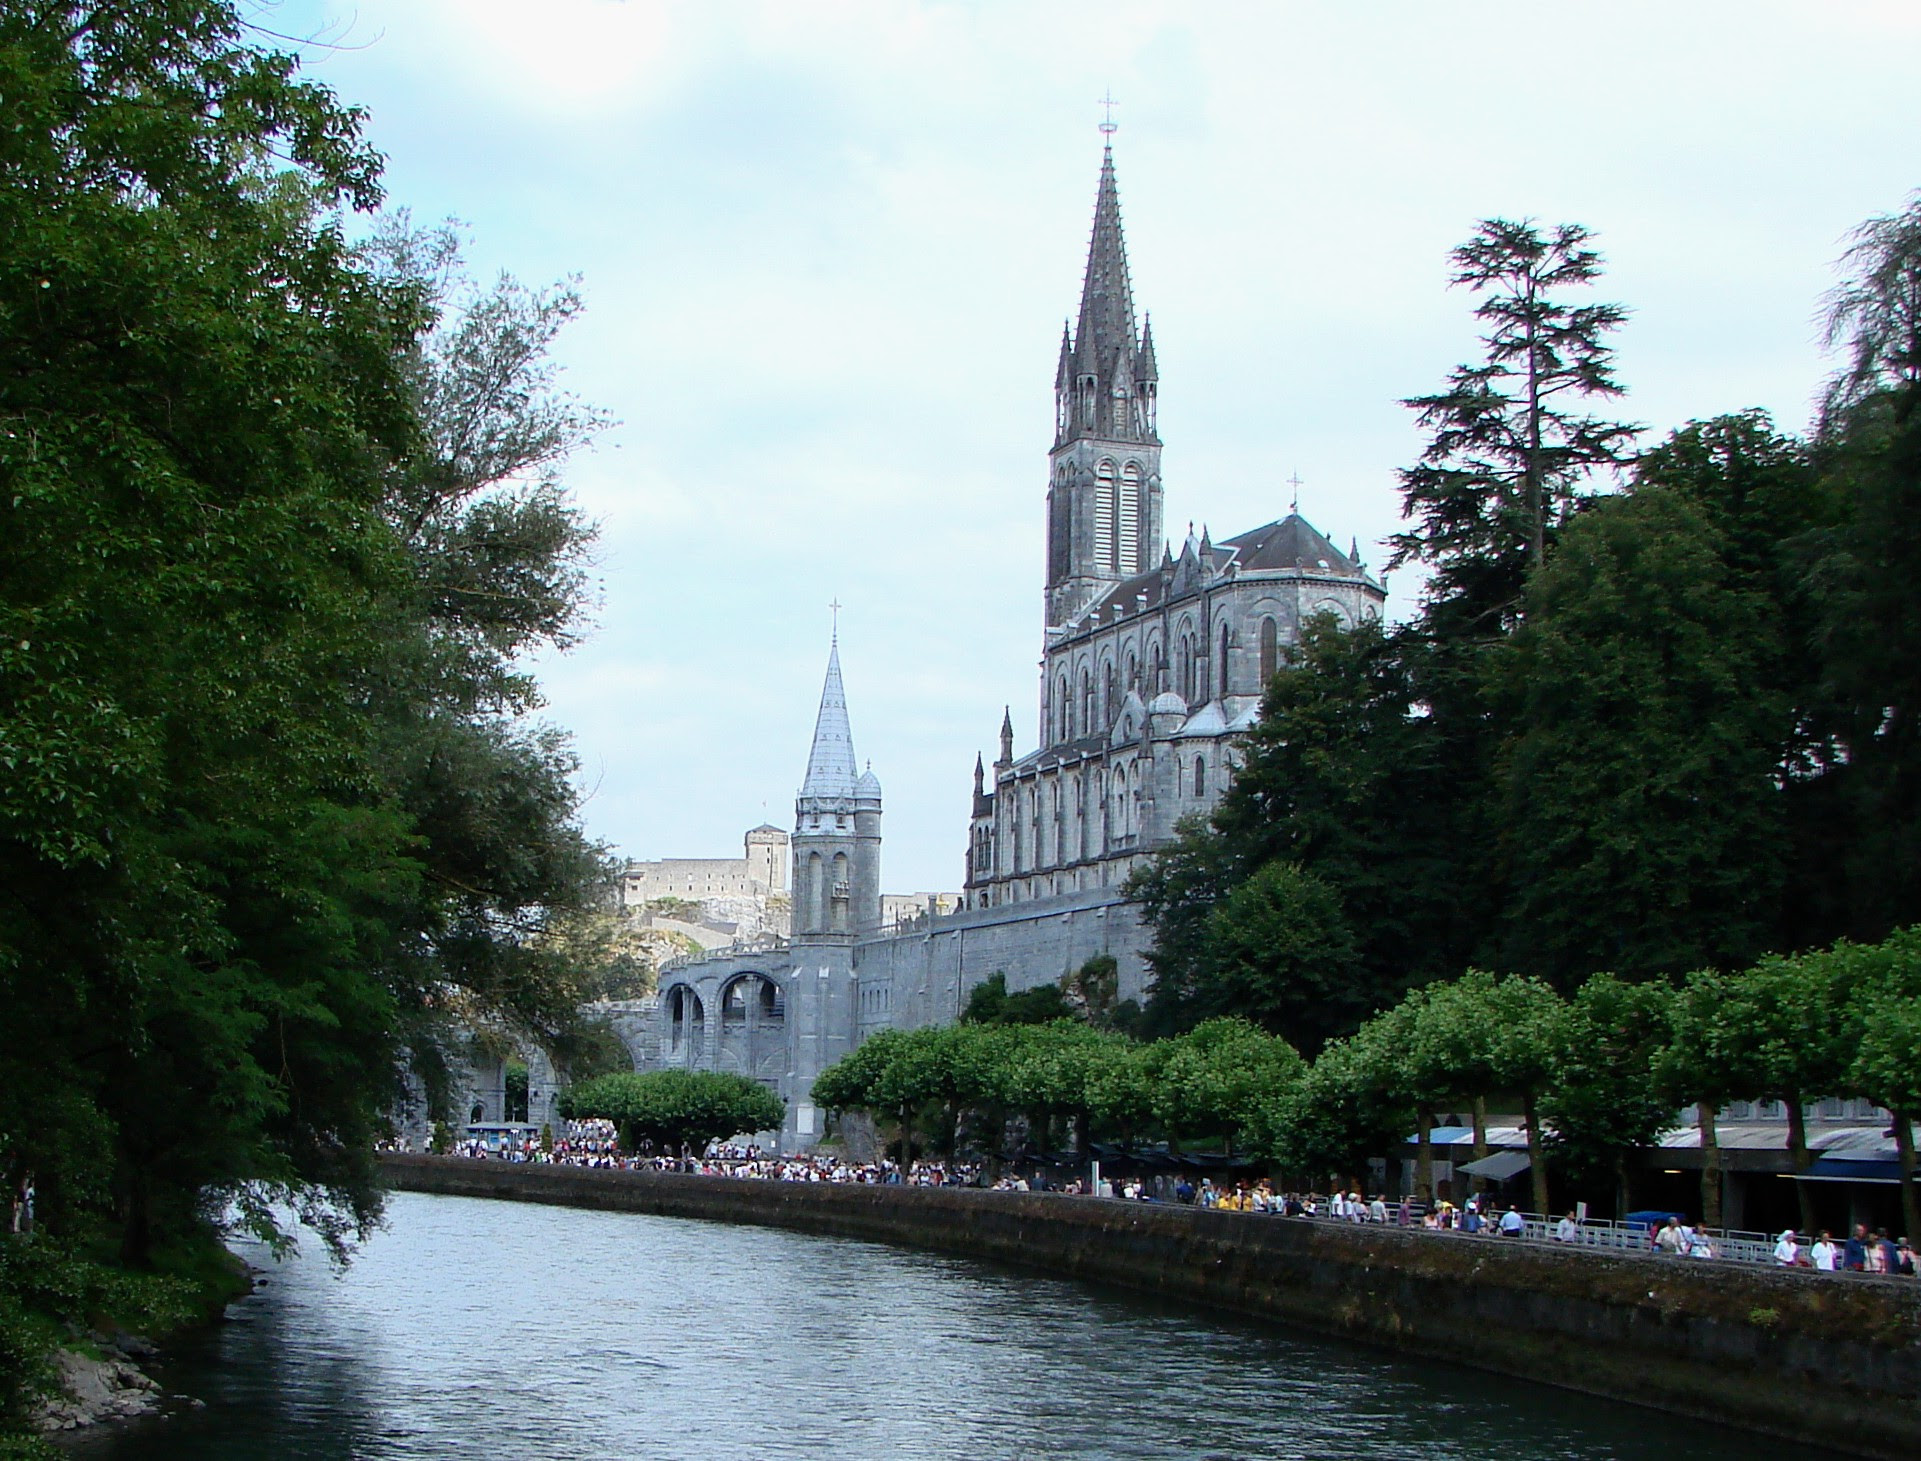 http://upload.wikimedia.org/wikipedia/commons/1/10/Lourdes_with_Sanctuaries,_Castle_and_Gave_de_Pau.JPG